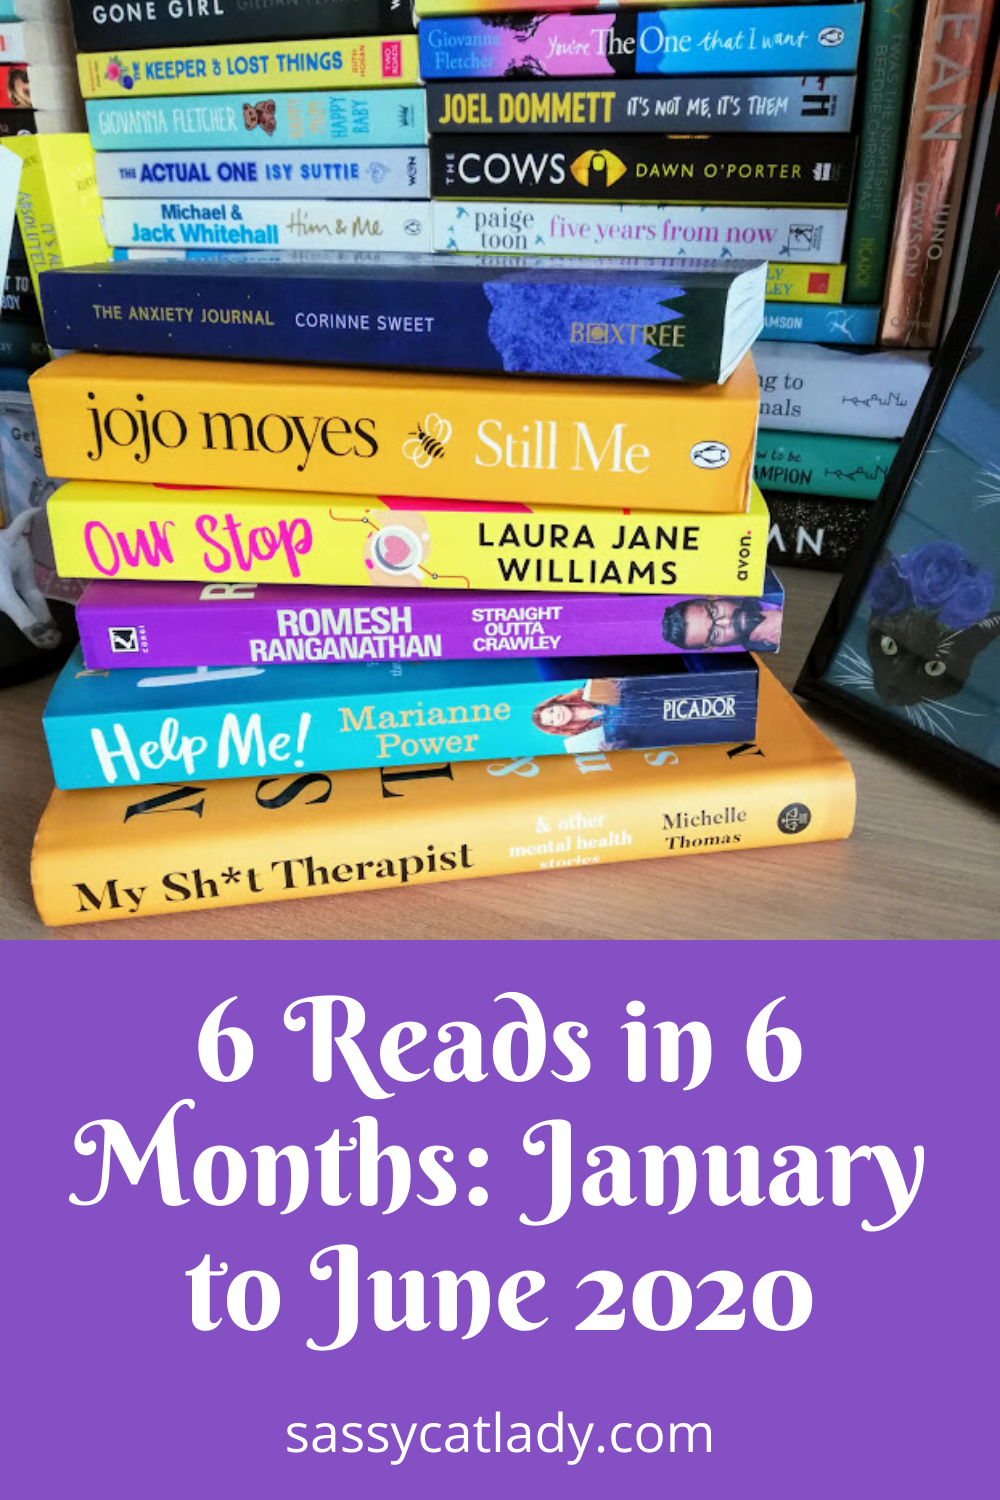 6 Reads in 6 Months - January to June 2020